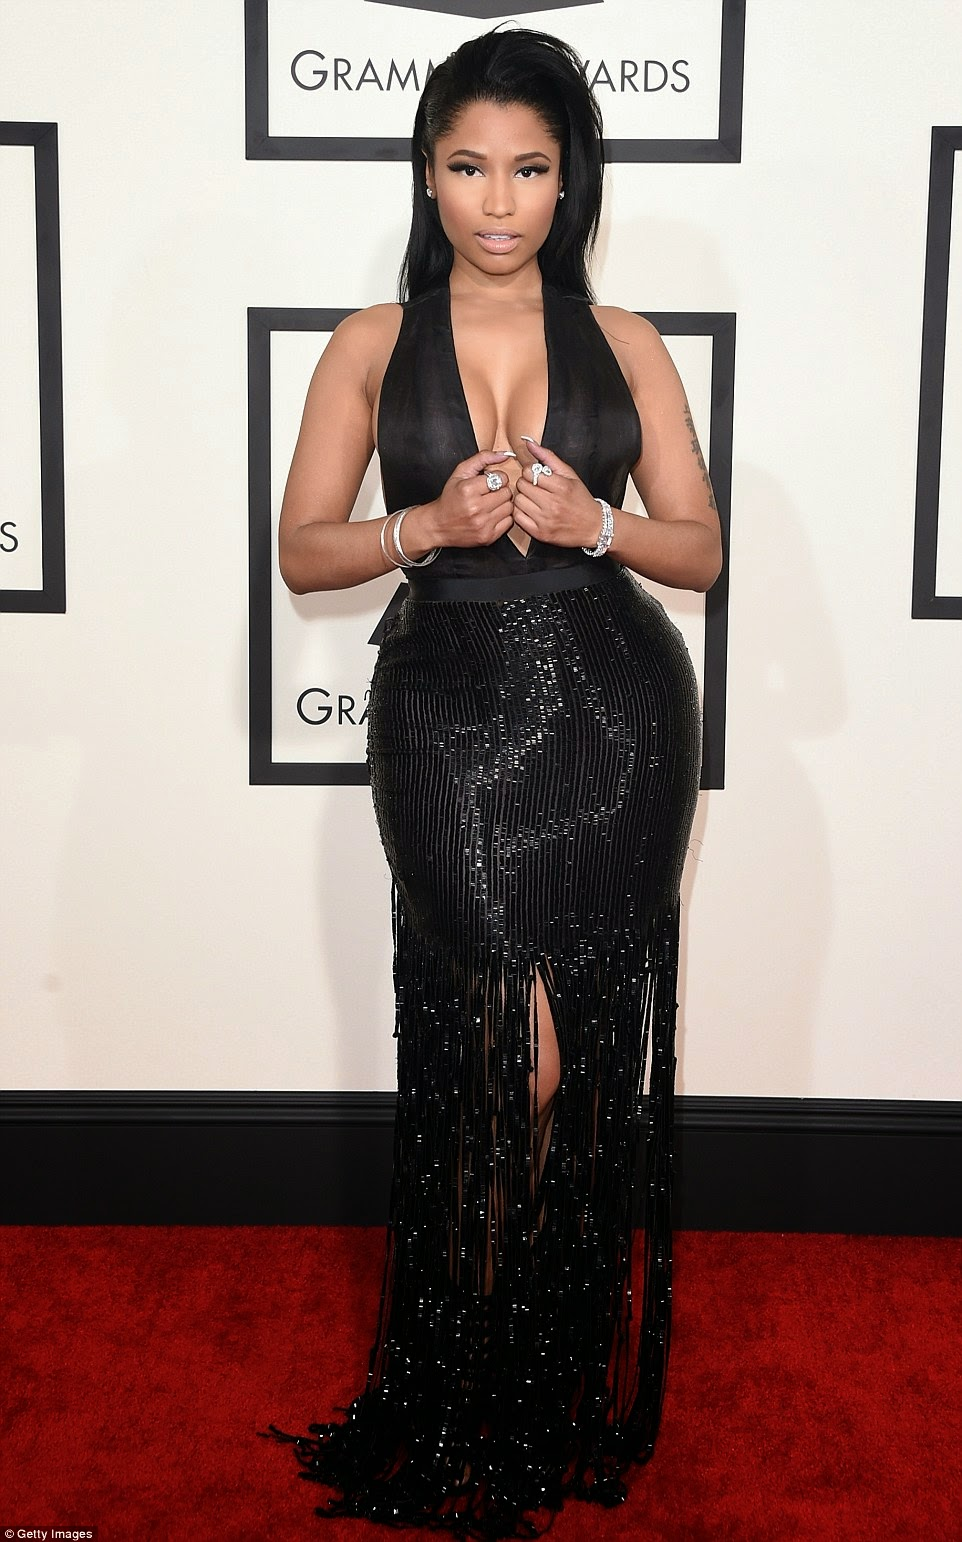 Nicki Minaj dazzled with sexy dress on 2015 Grammy's red carpet pic 1